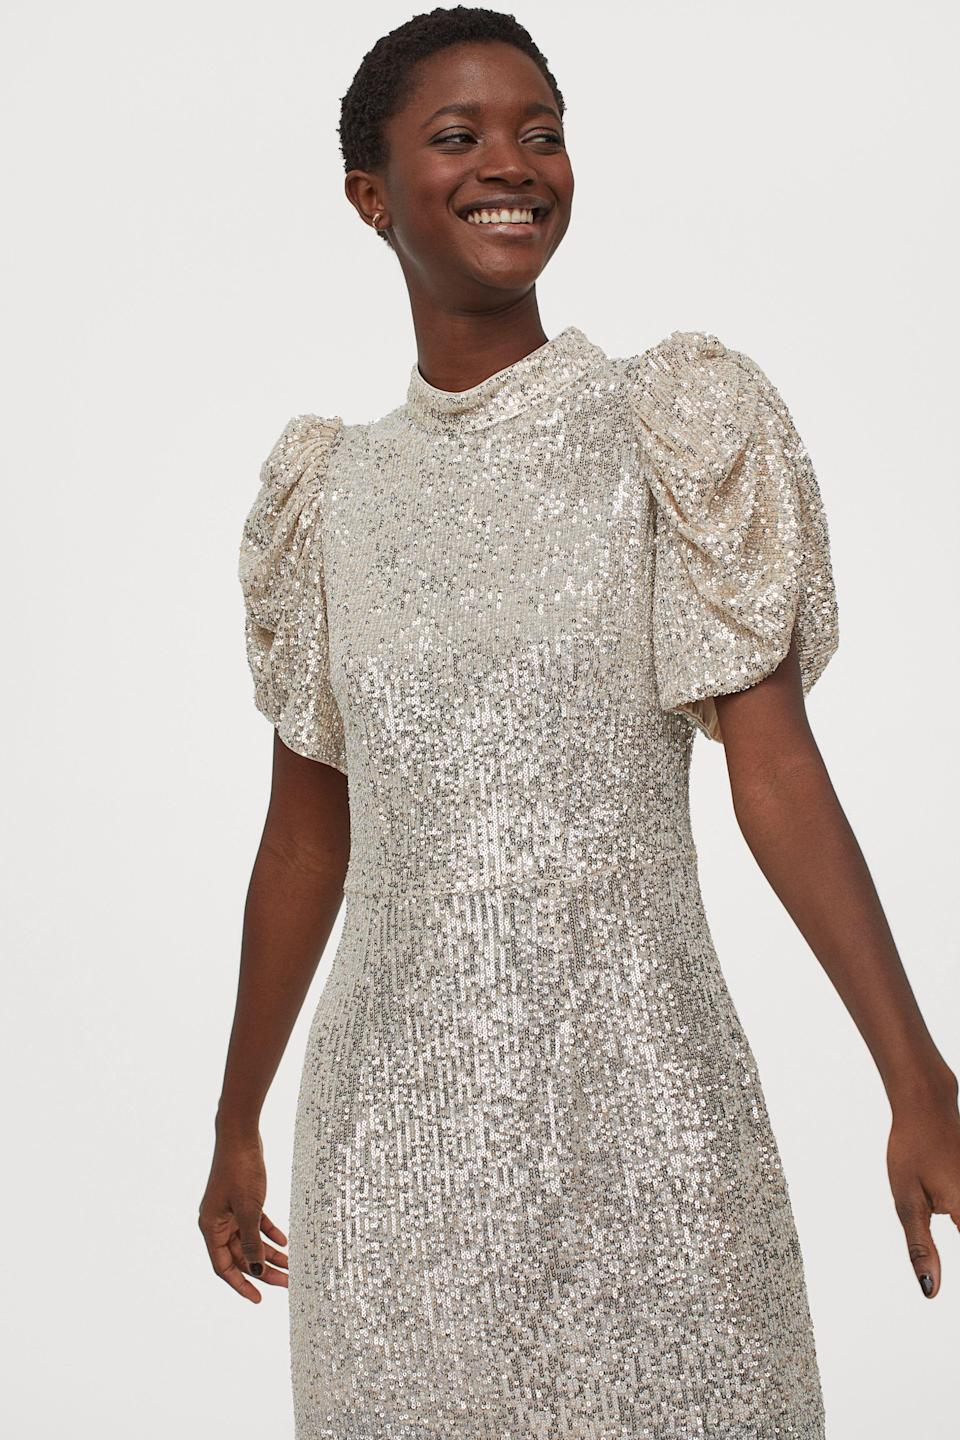 """<p><strong>H&M</strong></p><p>hm.com</p><p><strong>$49.99</strong></p><p><a href=""""https://go.redirectingat.com?id=74968X1596630&url=https%3A%2F%2Fwww2.hm.com%2Fen_us%2Fproductpage.0931093001.html&sref=https%3A%2F%2Fwww.goodhousekeeping.com%2Fbeauty%2Ffashion%2Fg25400387%2Fnew-years-eve-outfits%2F"""" rel=""""nofollow noopener"""" target=""""_blank"""" data-ylk=""""slk:Shop Now"""" class=""""link rapid-noclick-resp"""">Shop Now</a></p><p>This dress has everything you'd want for NYE: puff sleeves, sequins, and a standup collar. </p>"""